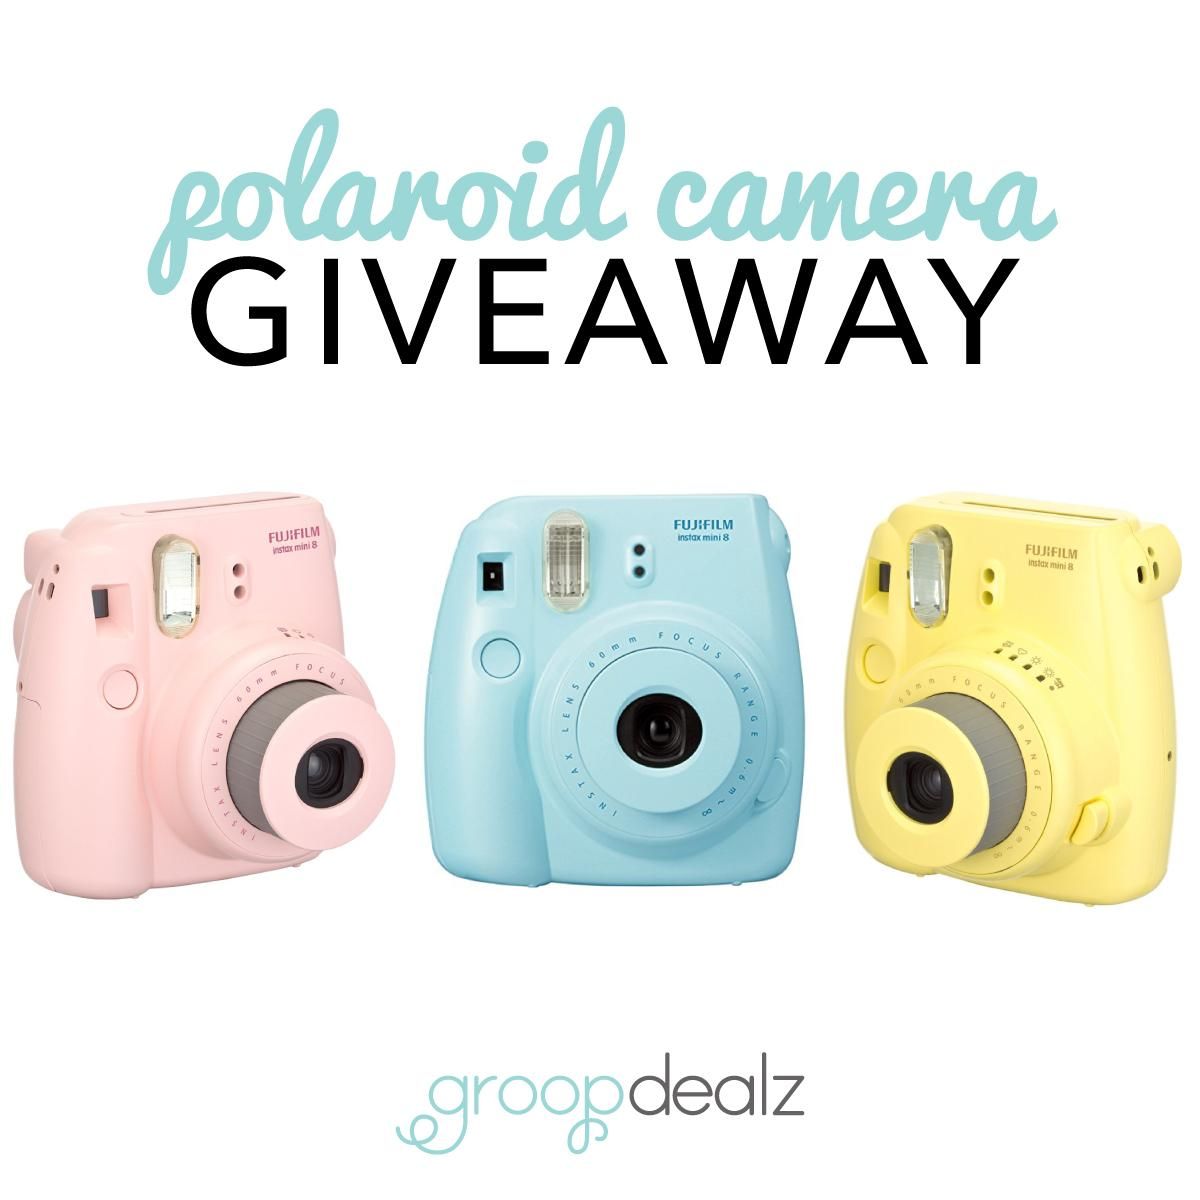 Have you entered our Polaroid camera and Groopdealz Credit giveaway yet?? Hurry, ends today!  http://t.co/5qmnktomV8 http://t.co/RvwBkJFxdy